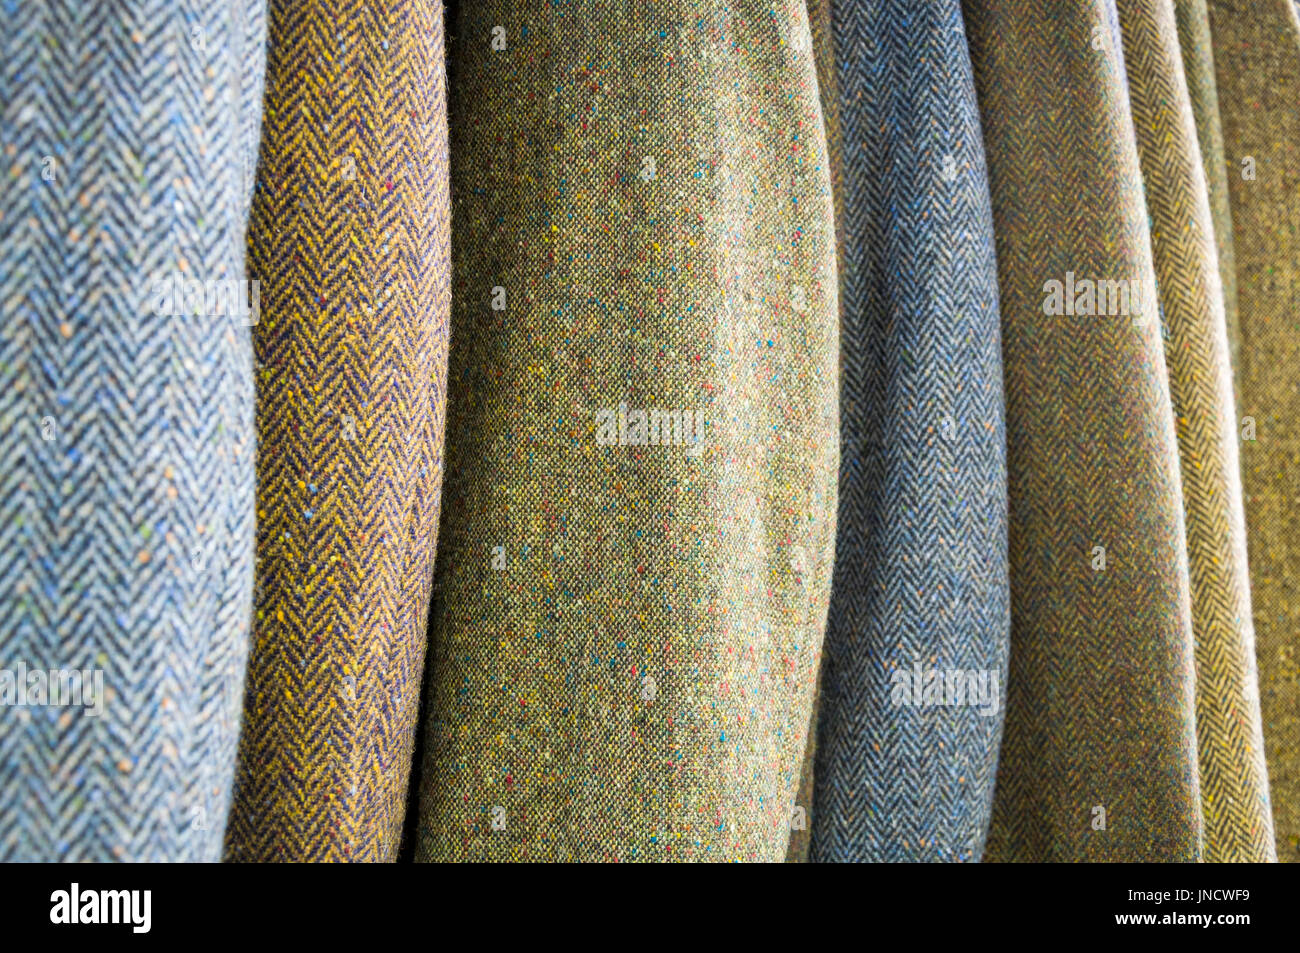 Hand woven Donegal tweed jackets showing the subtle colours of traditionally hand weaving tweeds. Ardara, County Donegal, Ireland - Stock Image